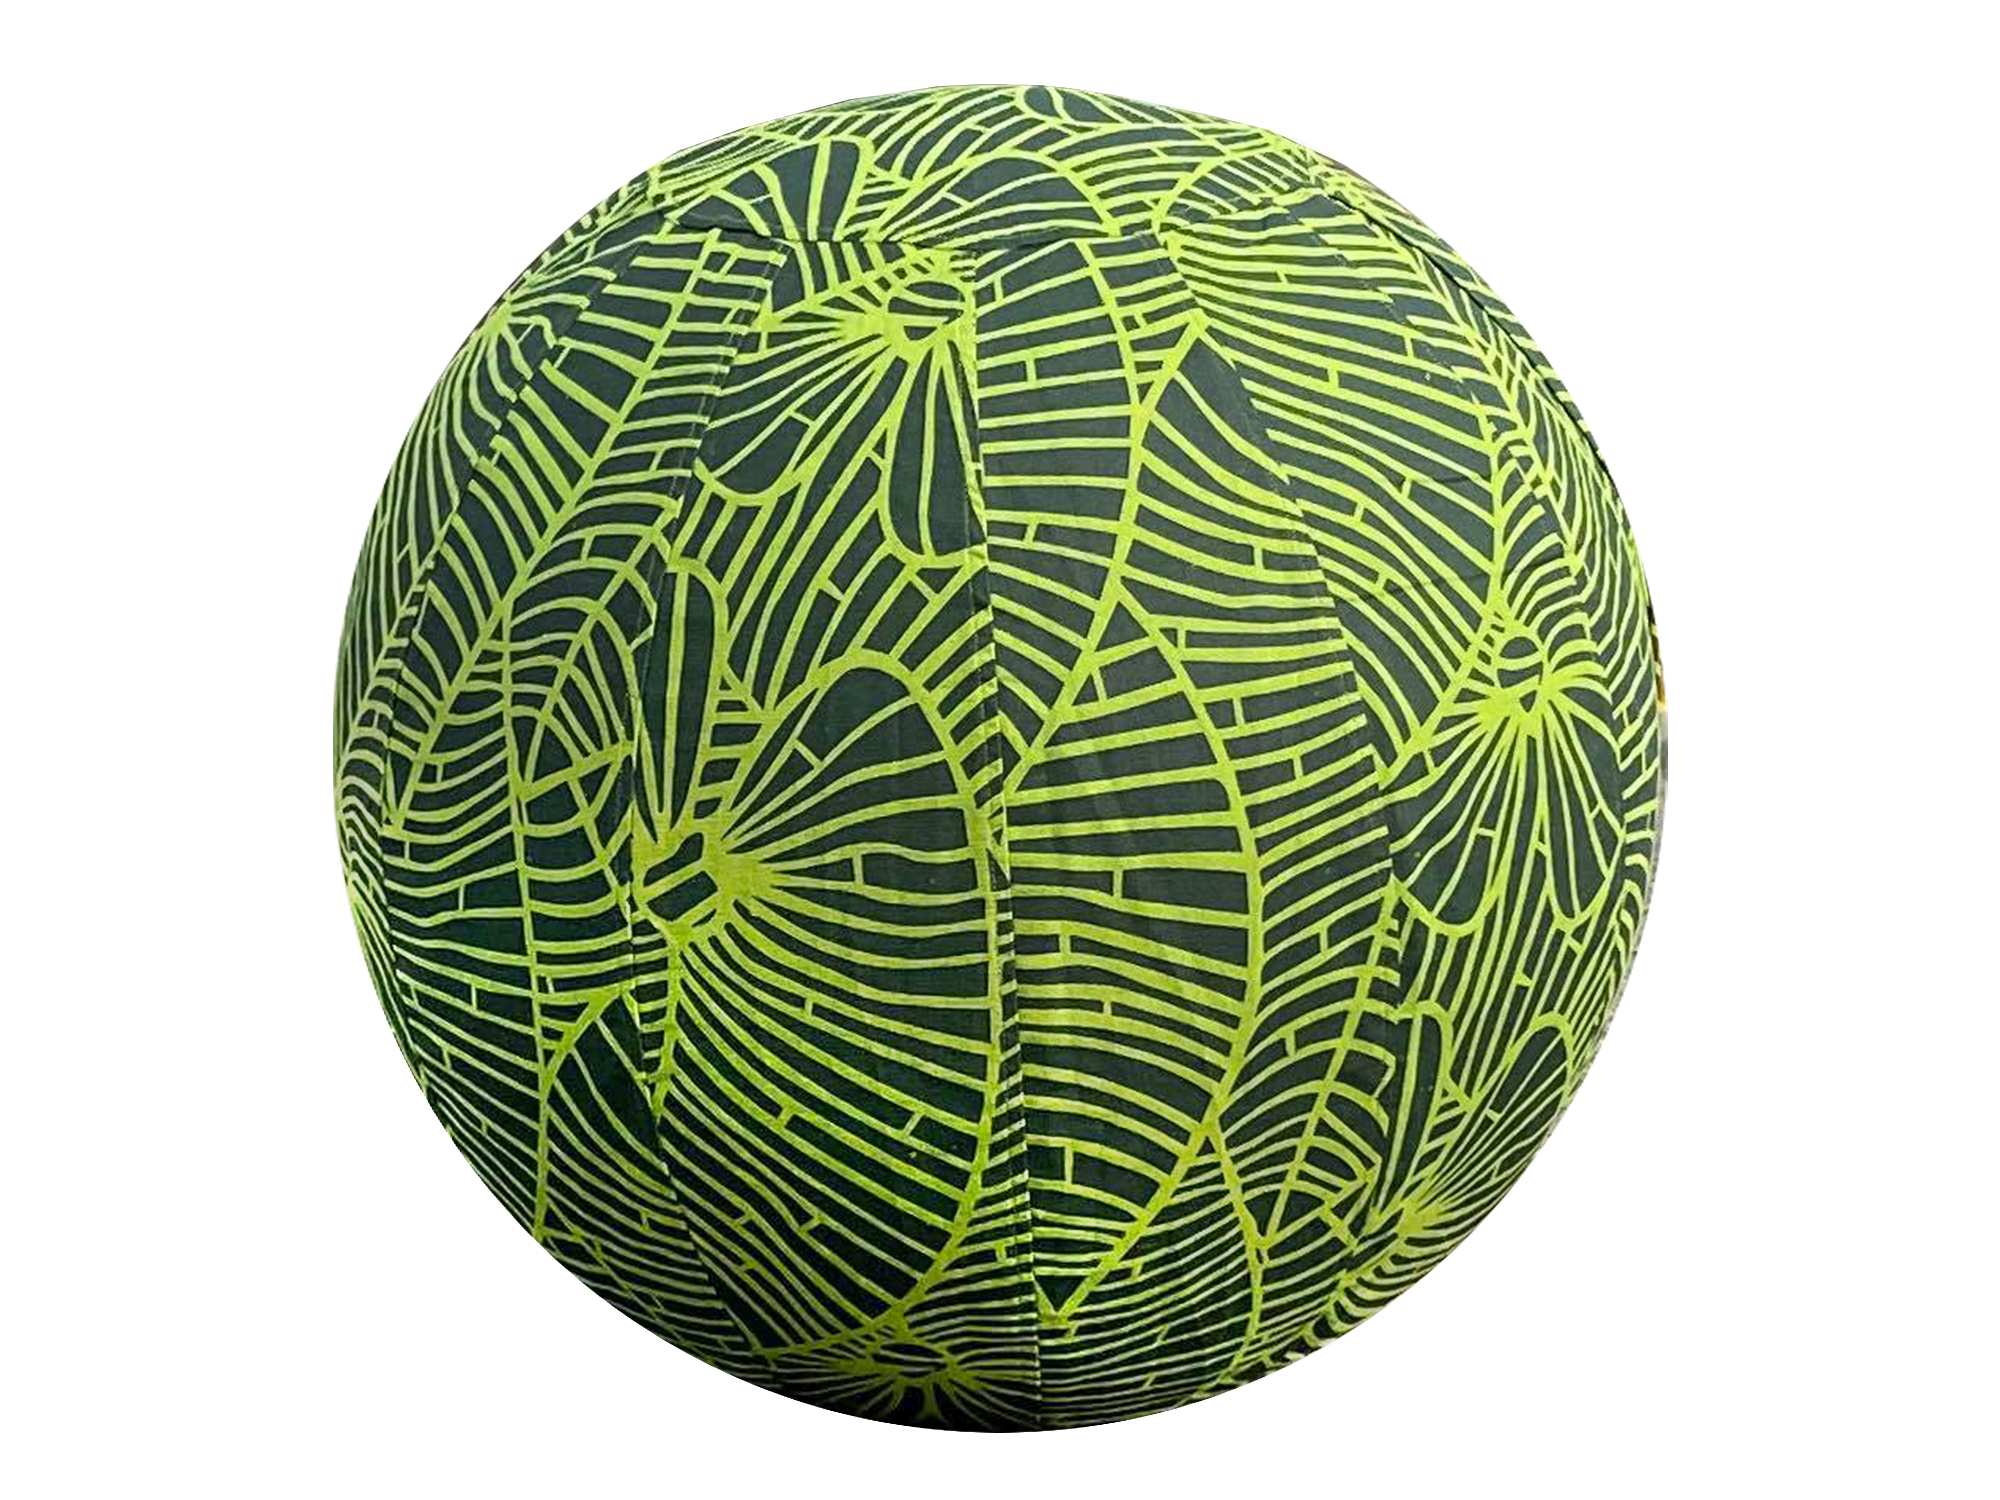 65cm Balance Ball / Yoga Ball Cover: Jungle Green Palm Leaf